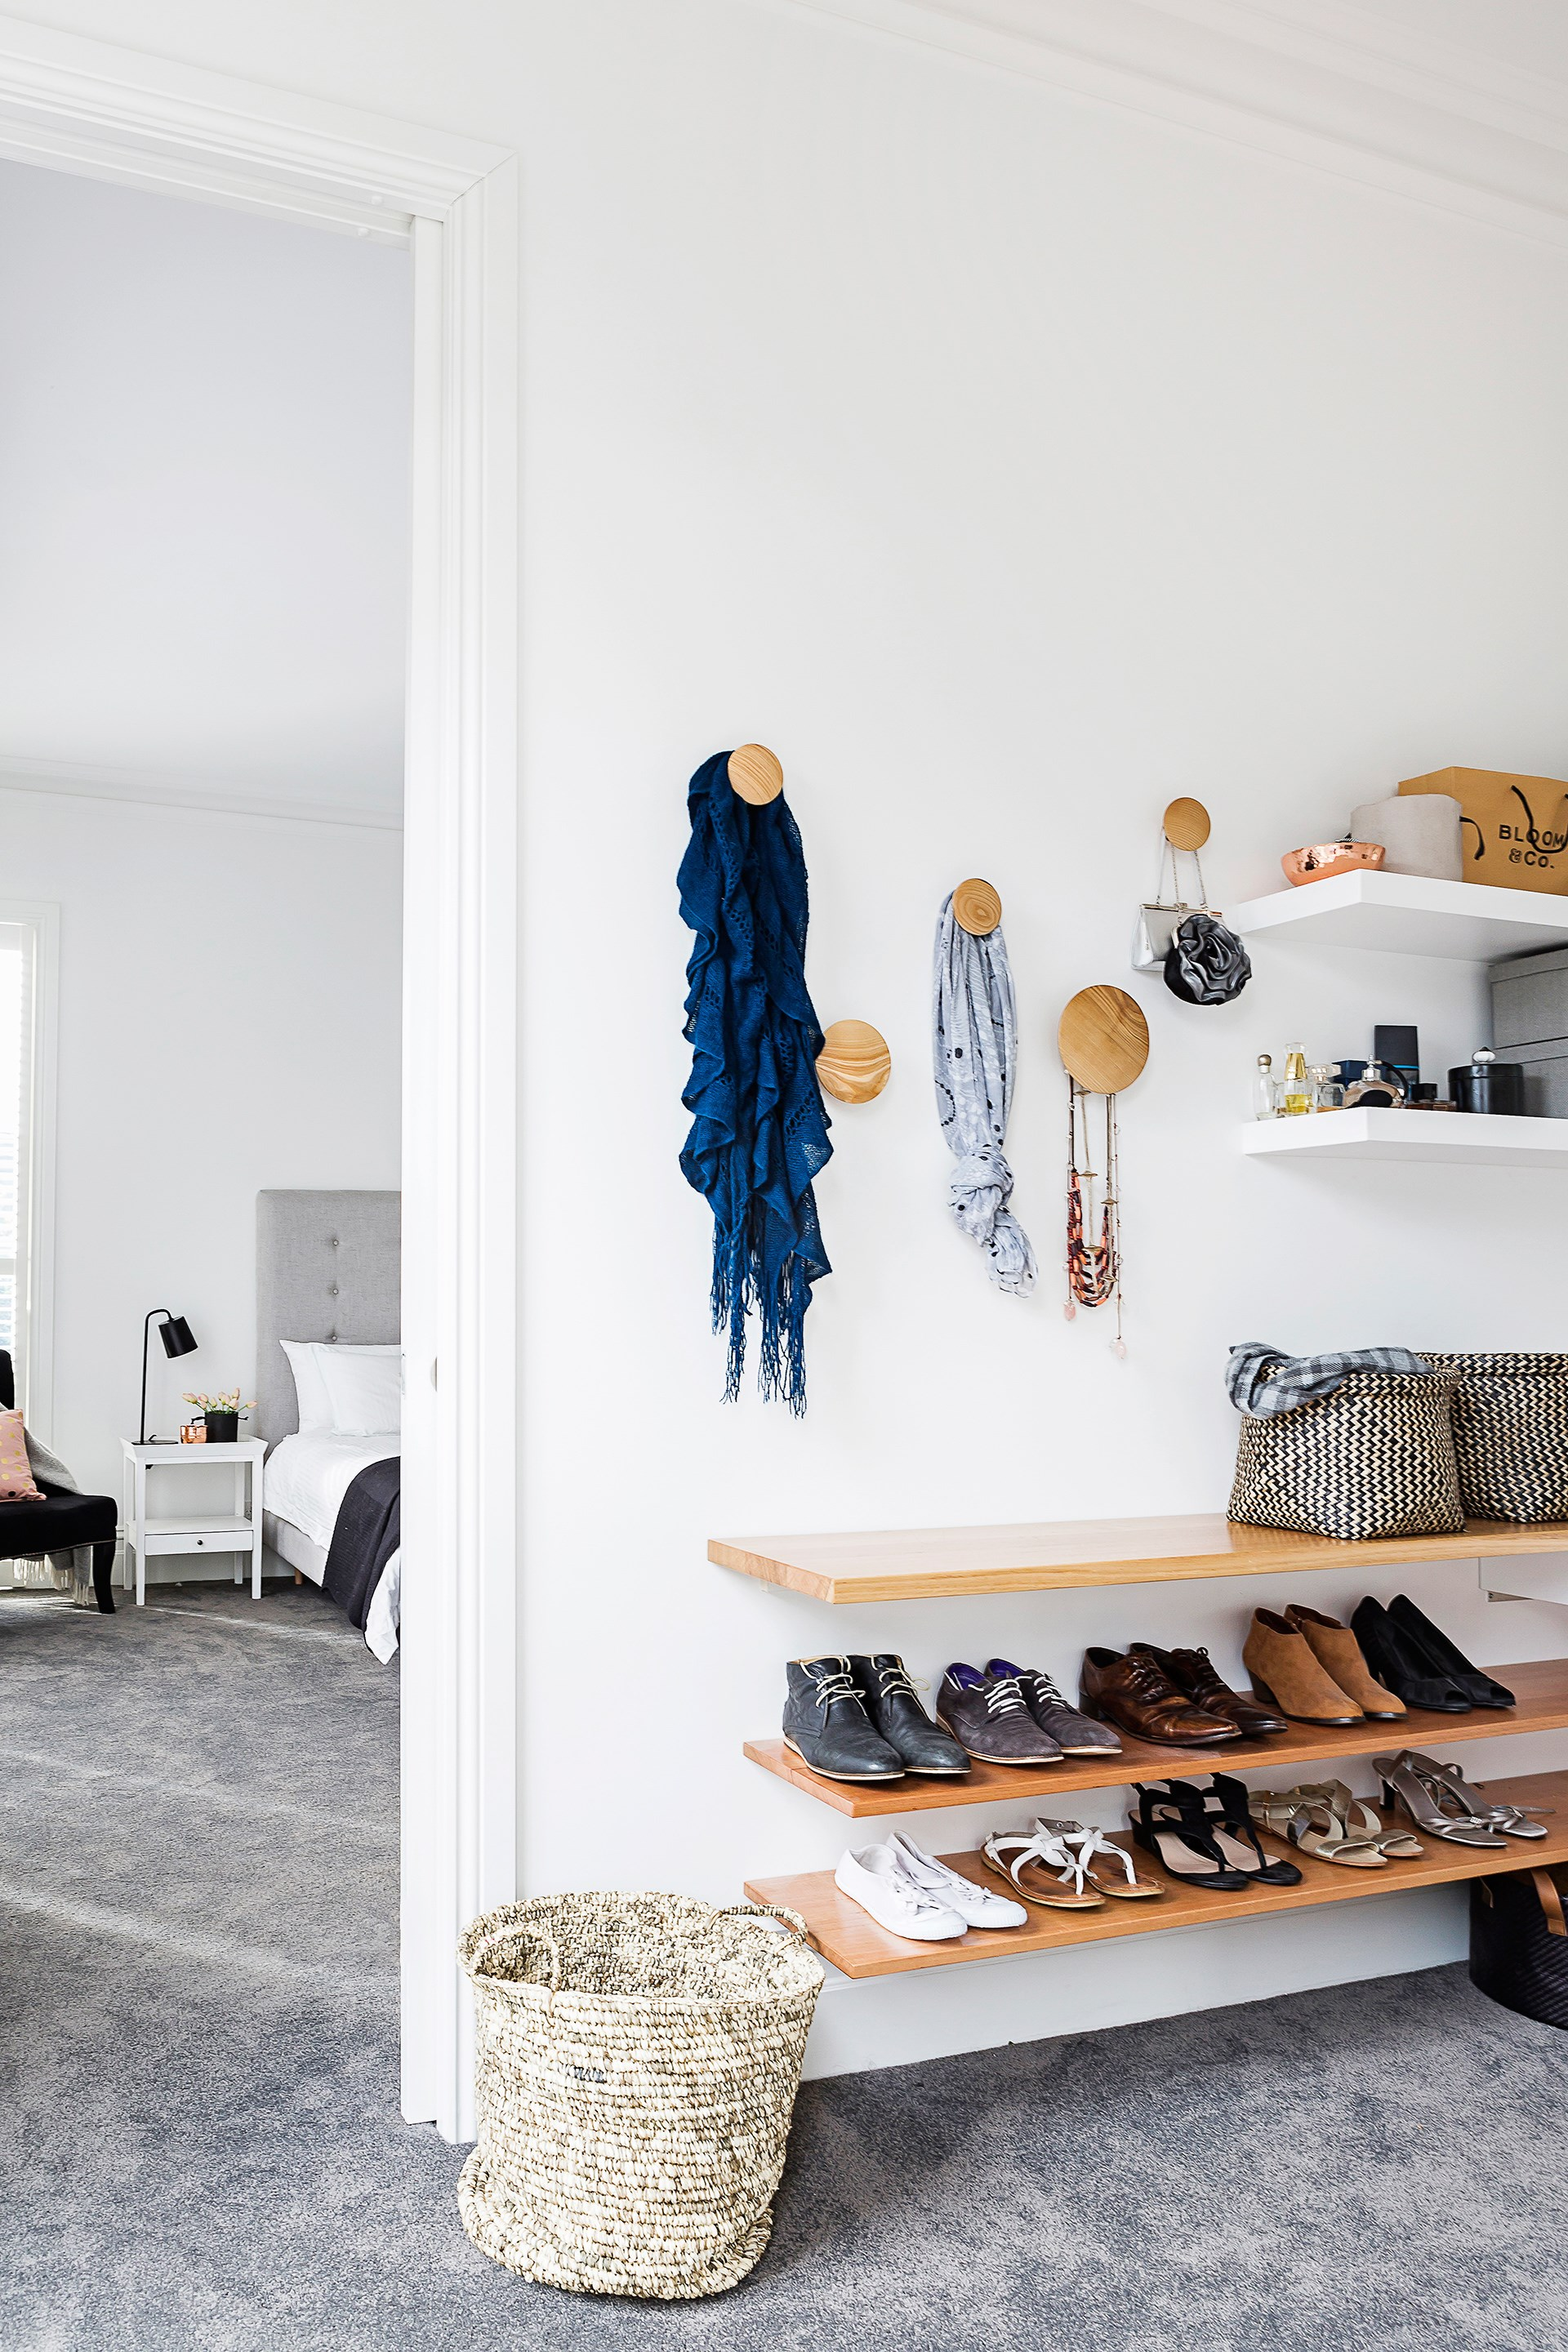 """Built-in shelves keep fashion accessories in good order in the walk-in robe of this [classic Victorian cottage](http://www.homestolove.com.au/gallery-rachel-and-marty-s-modern-classic-victorian-cottage-renovation-1978